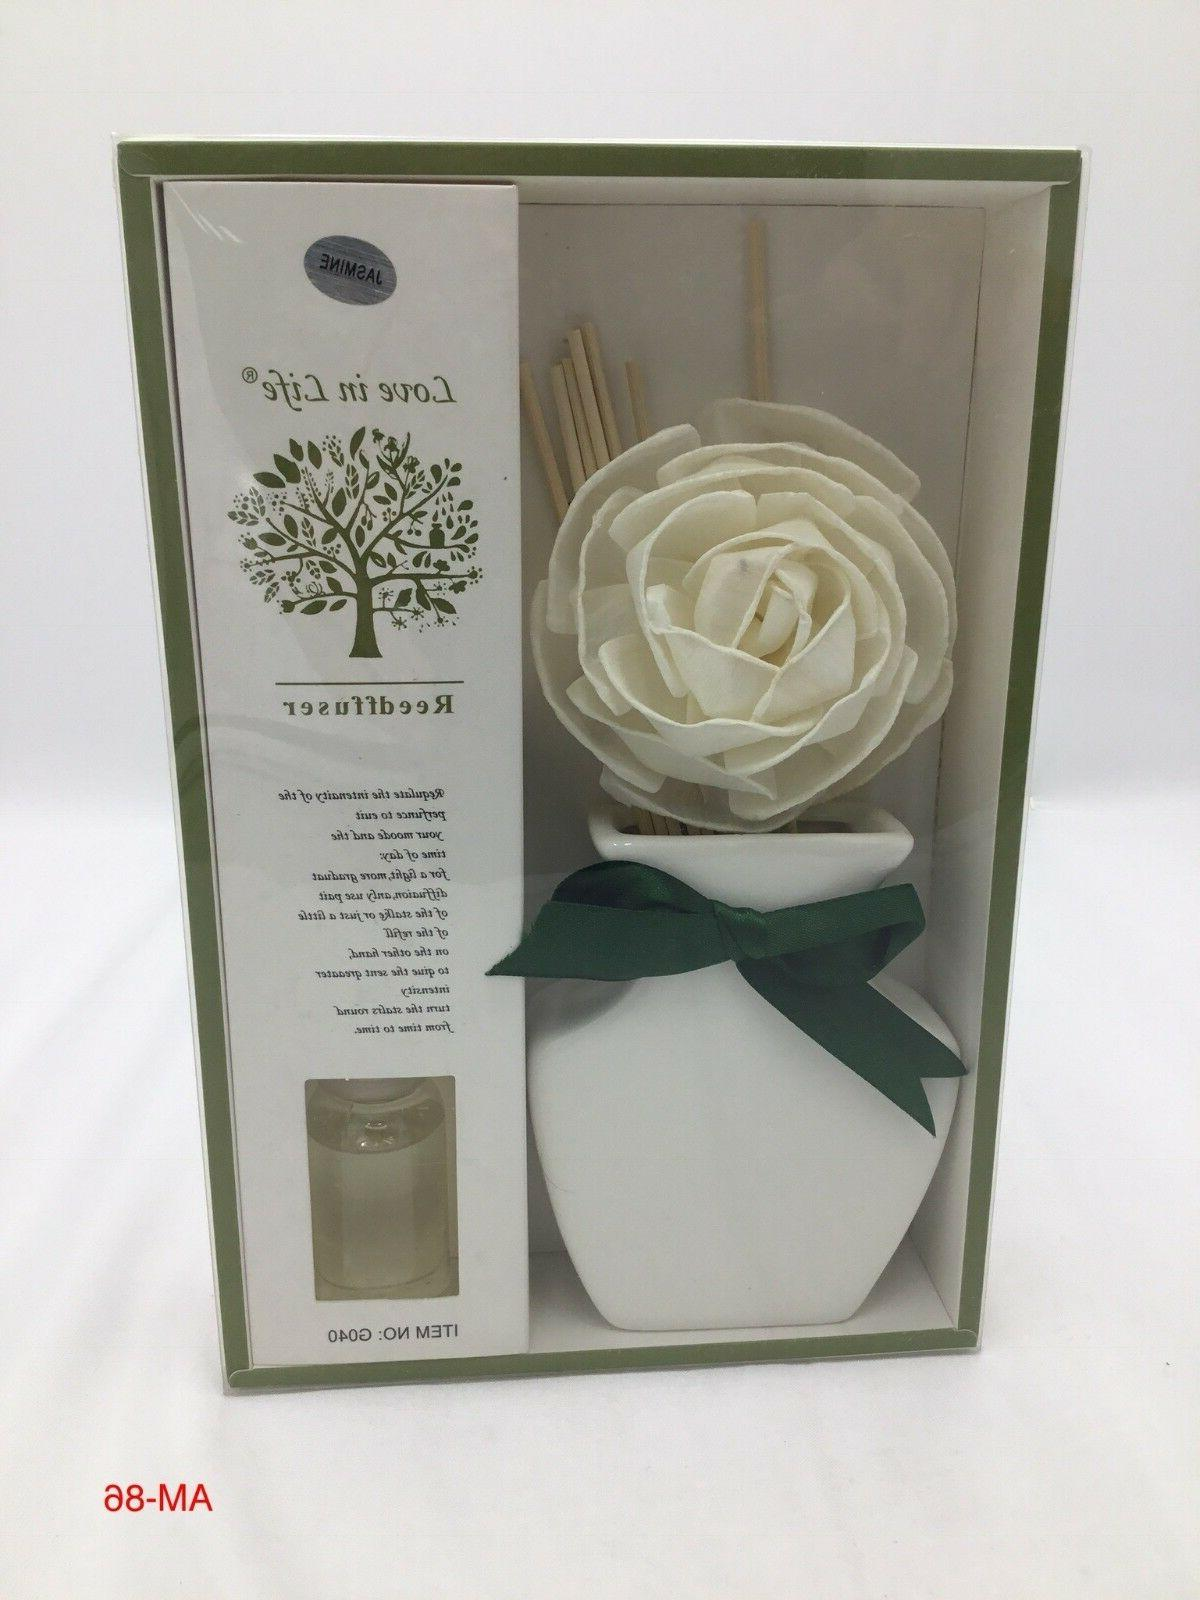 smartsense fragrant reed diffuser set with ceramic